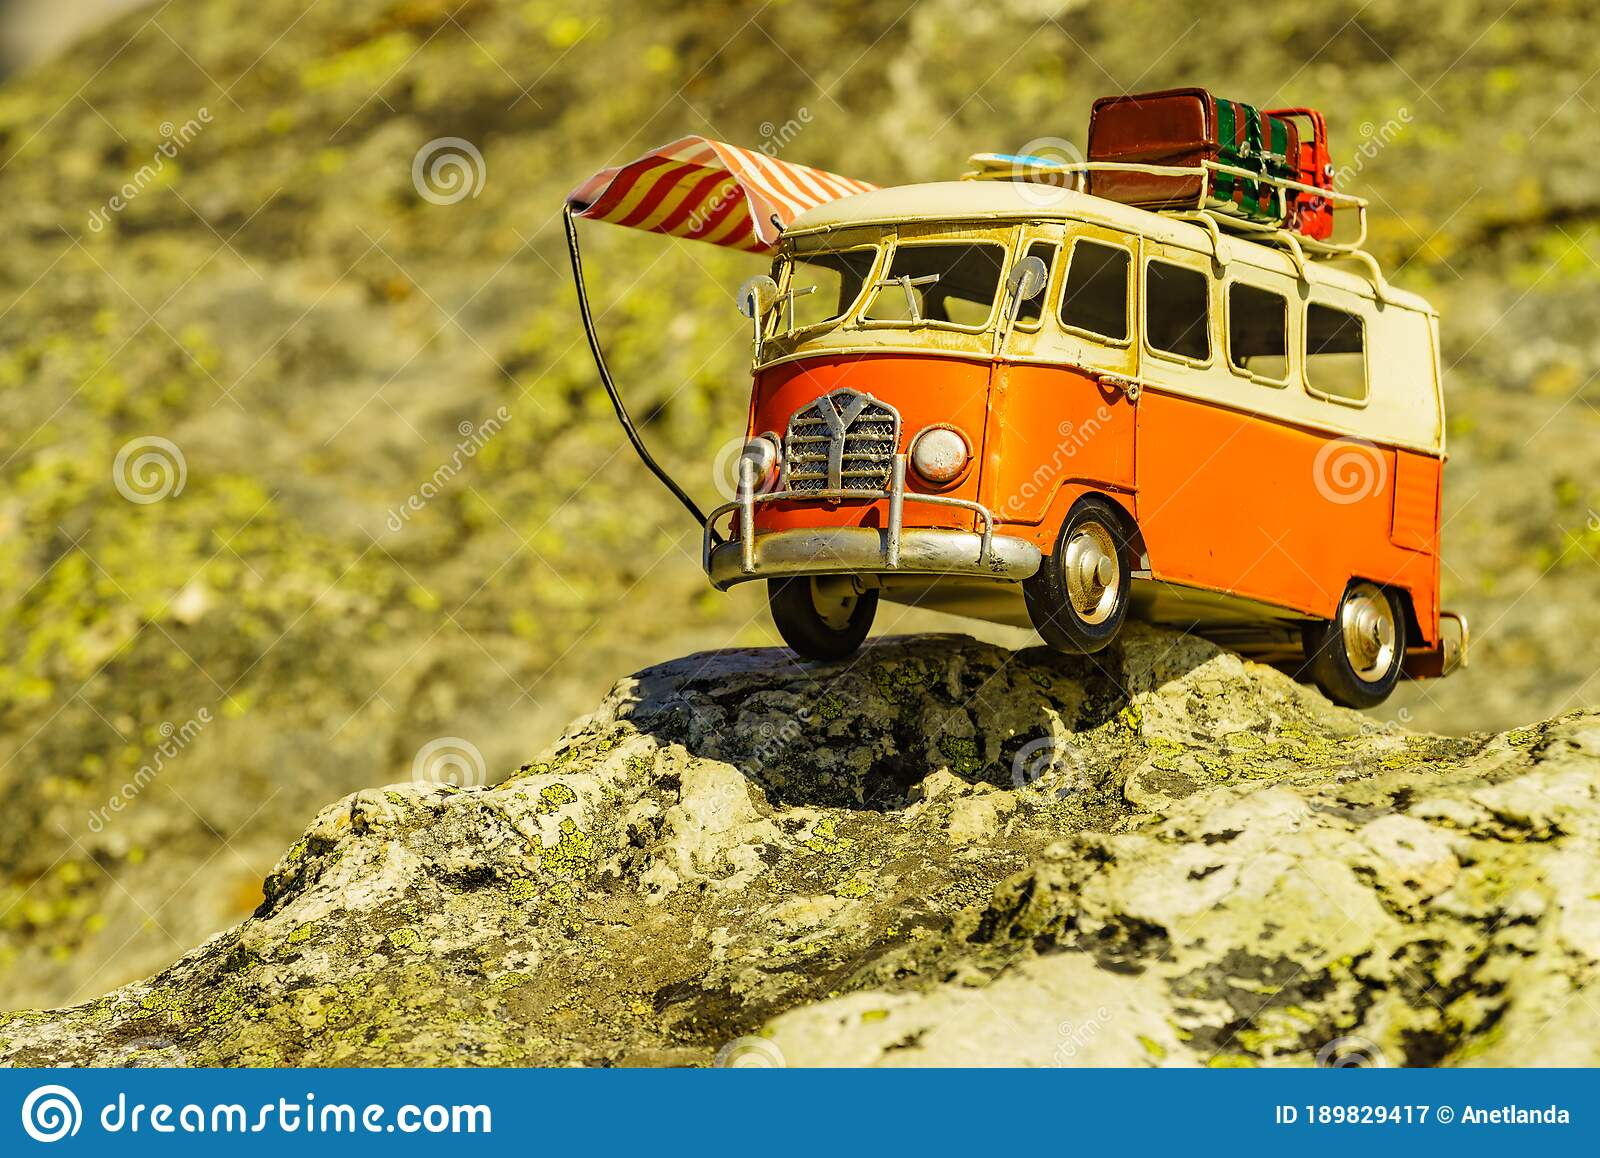 1 163 Vw Van Photos Free Royalty Free Stock Photos From Dreamstime